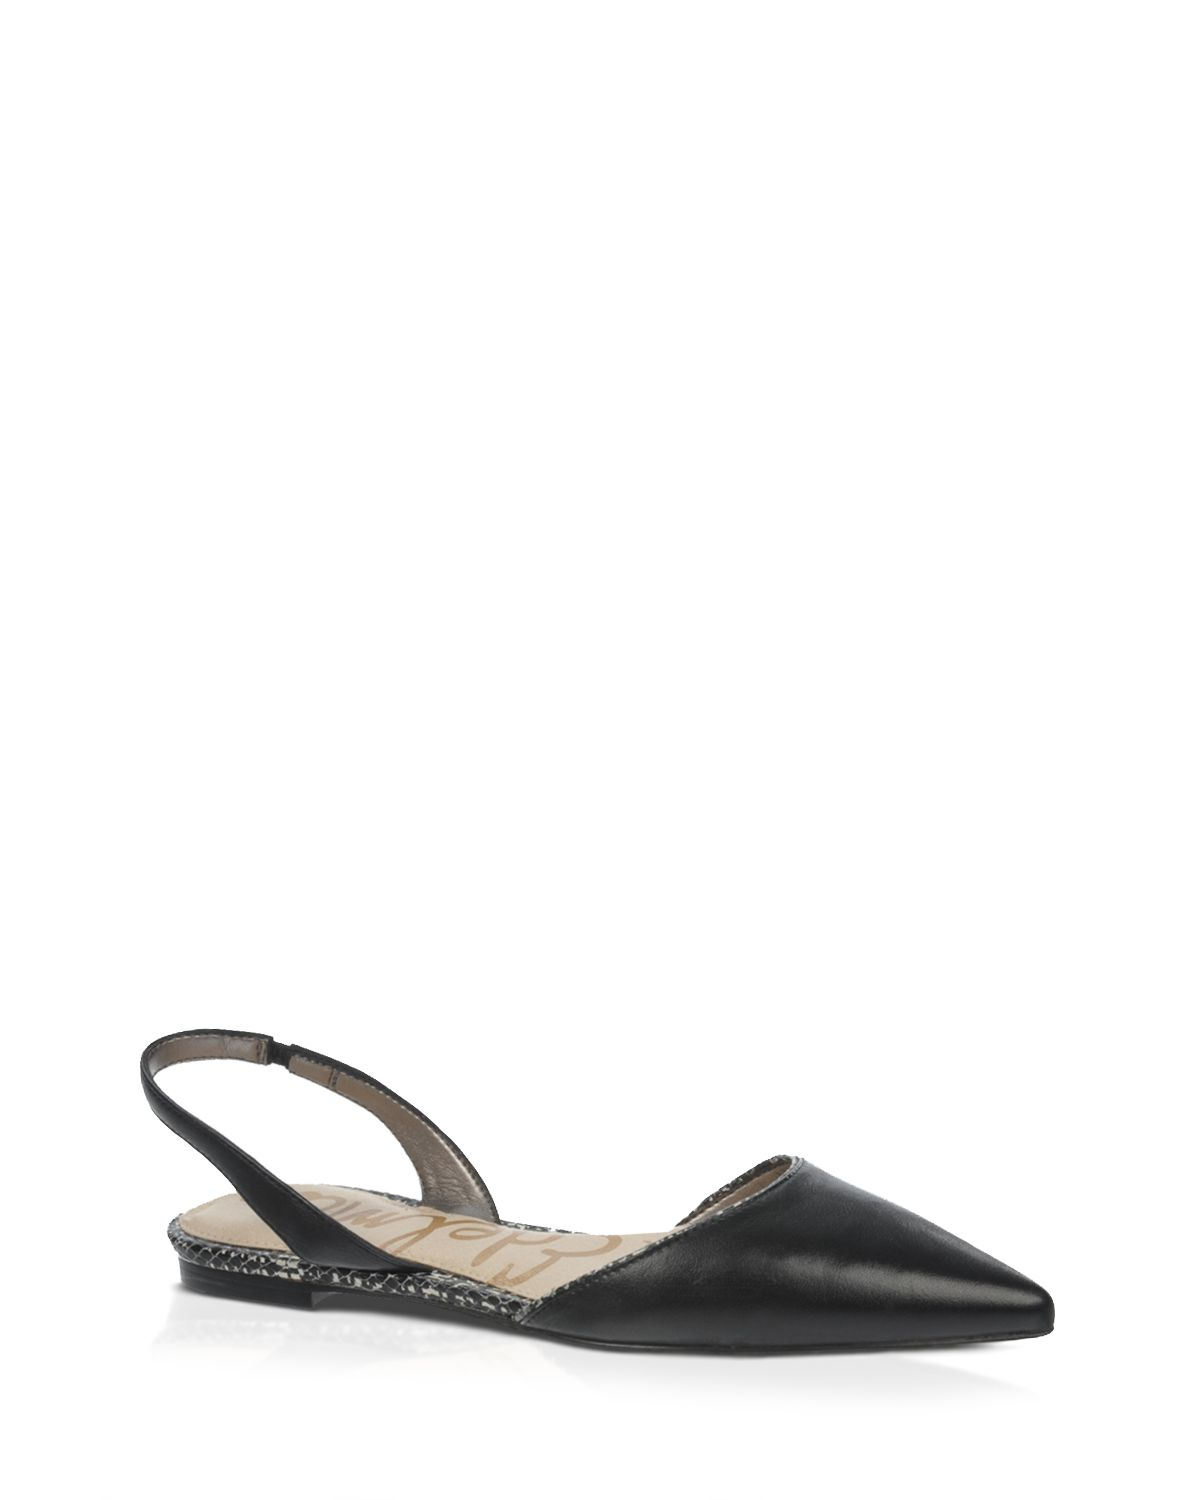 Lyst - Sam Edelman Pointed Toe Slingback Flats - Rory in Black